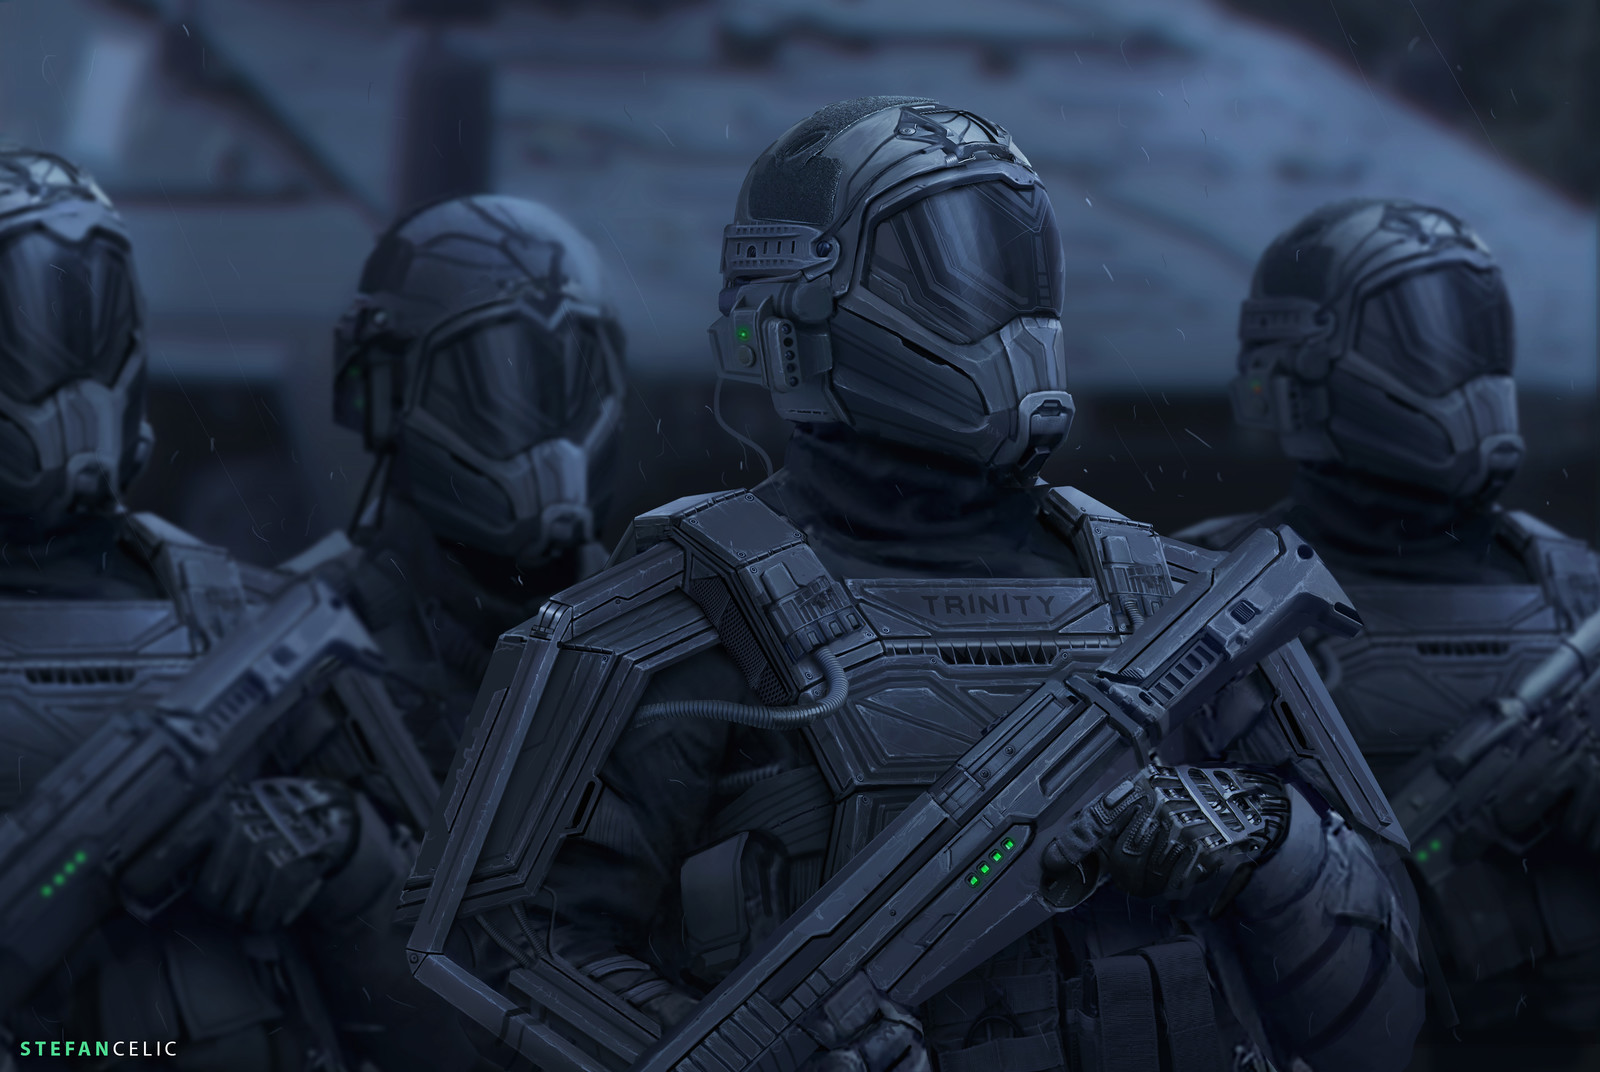 Trinity Corp: Soldiers